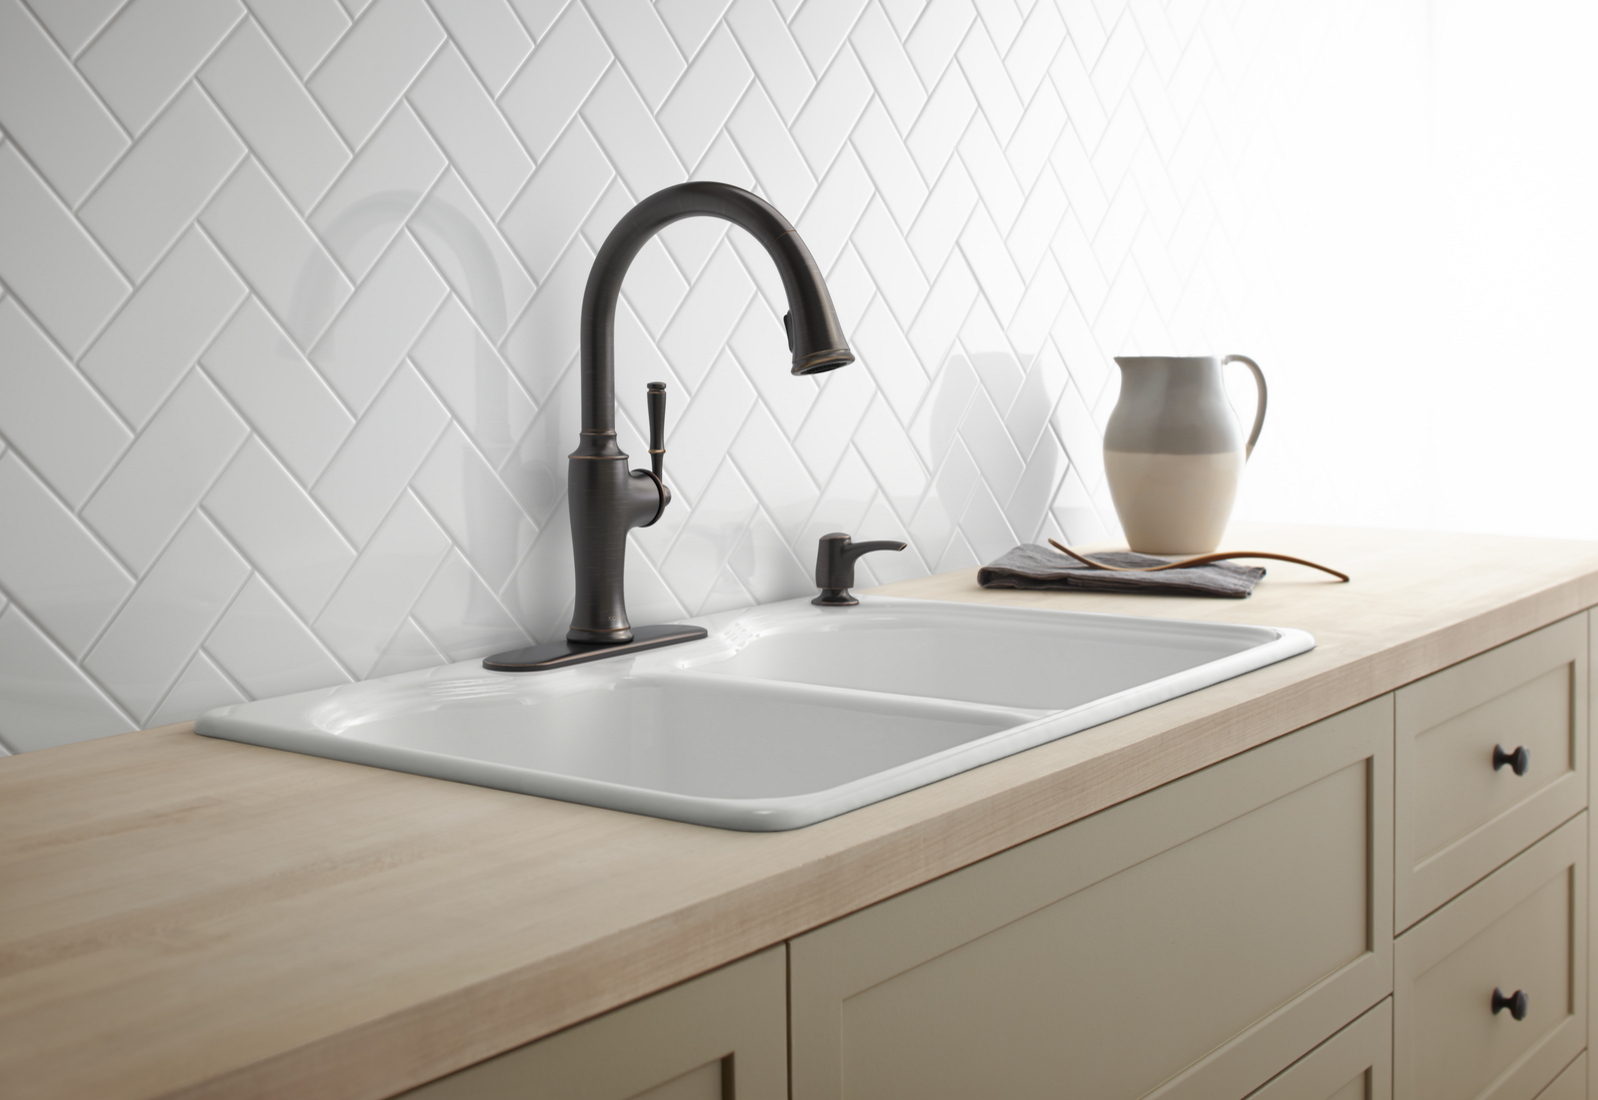 Take Back Your Kitchen Choosing A New Kitchen Faucet Casa - New kitchen faucet